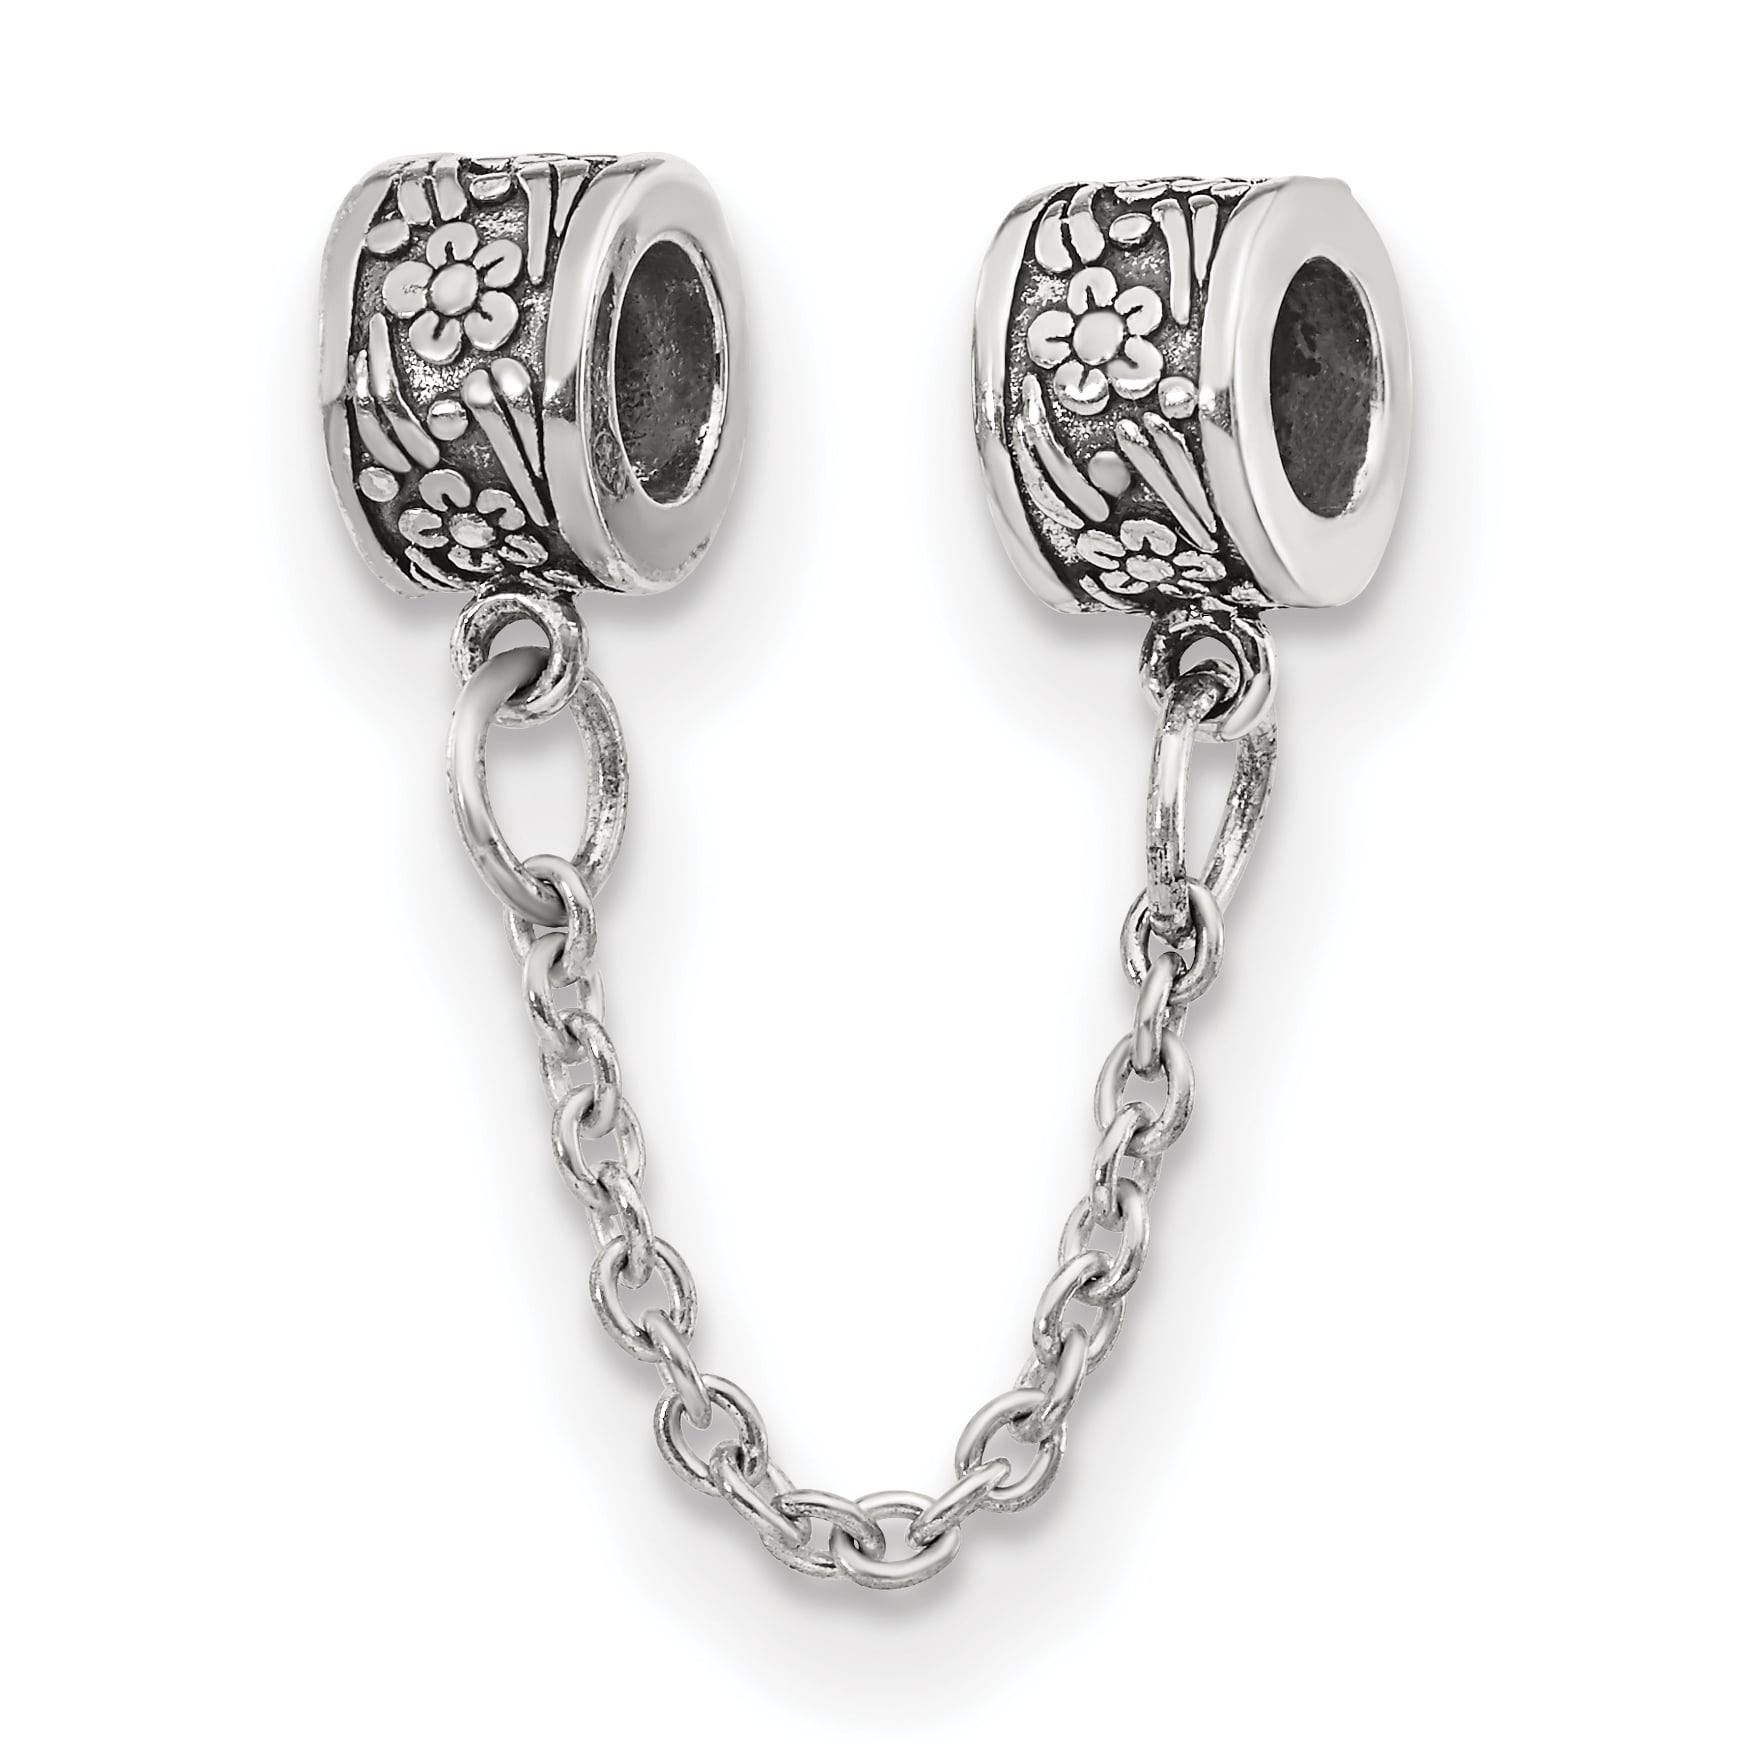 925 Sterling Silver Charm For Bracelet Security Chain Floral Bead ... 19ecf3150